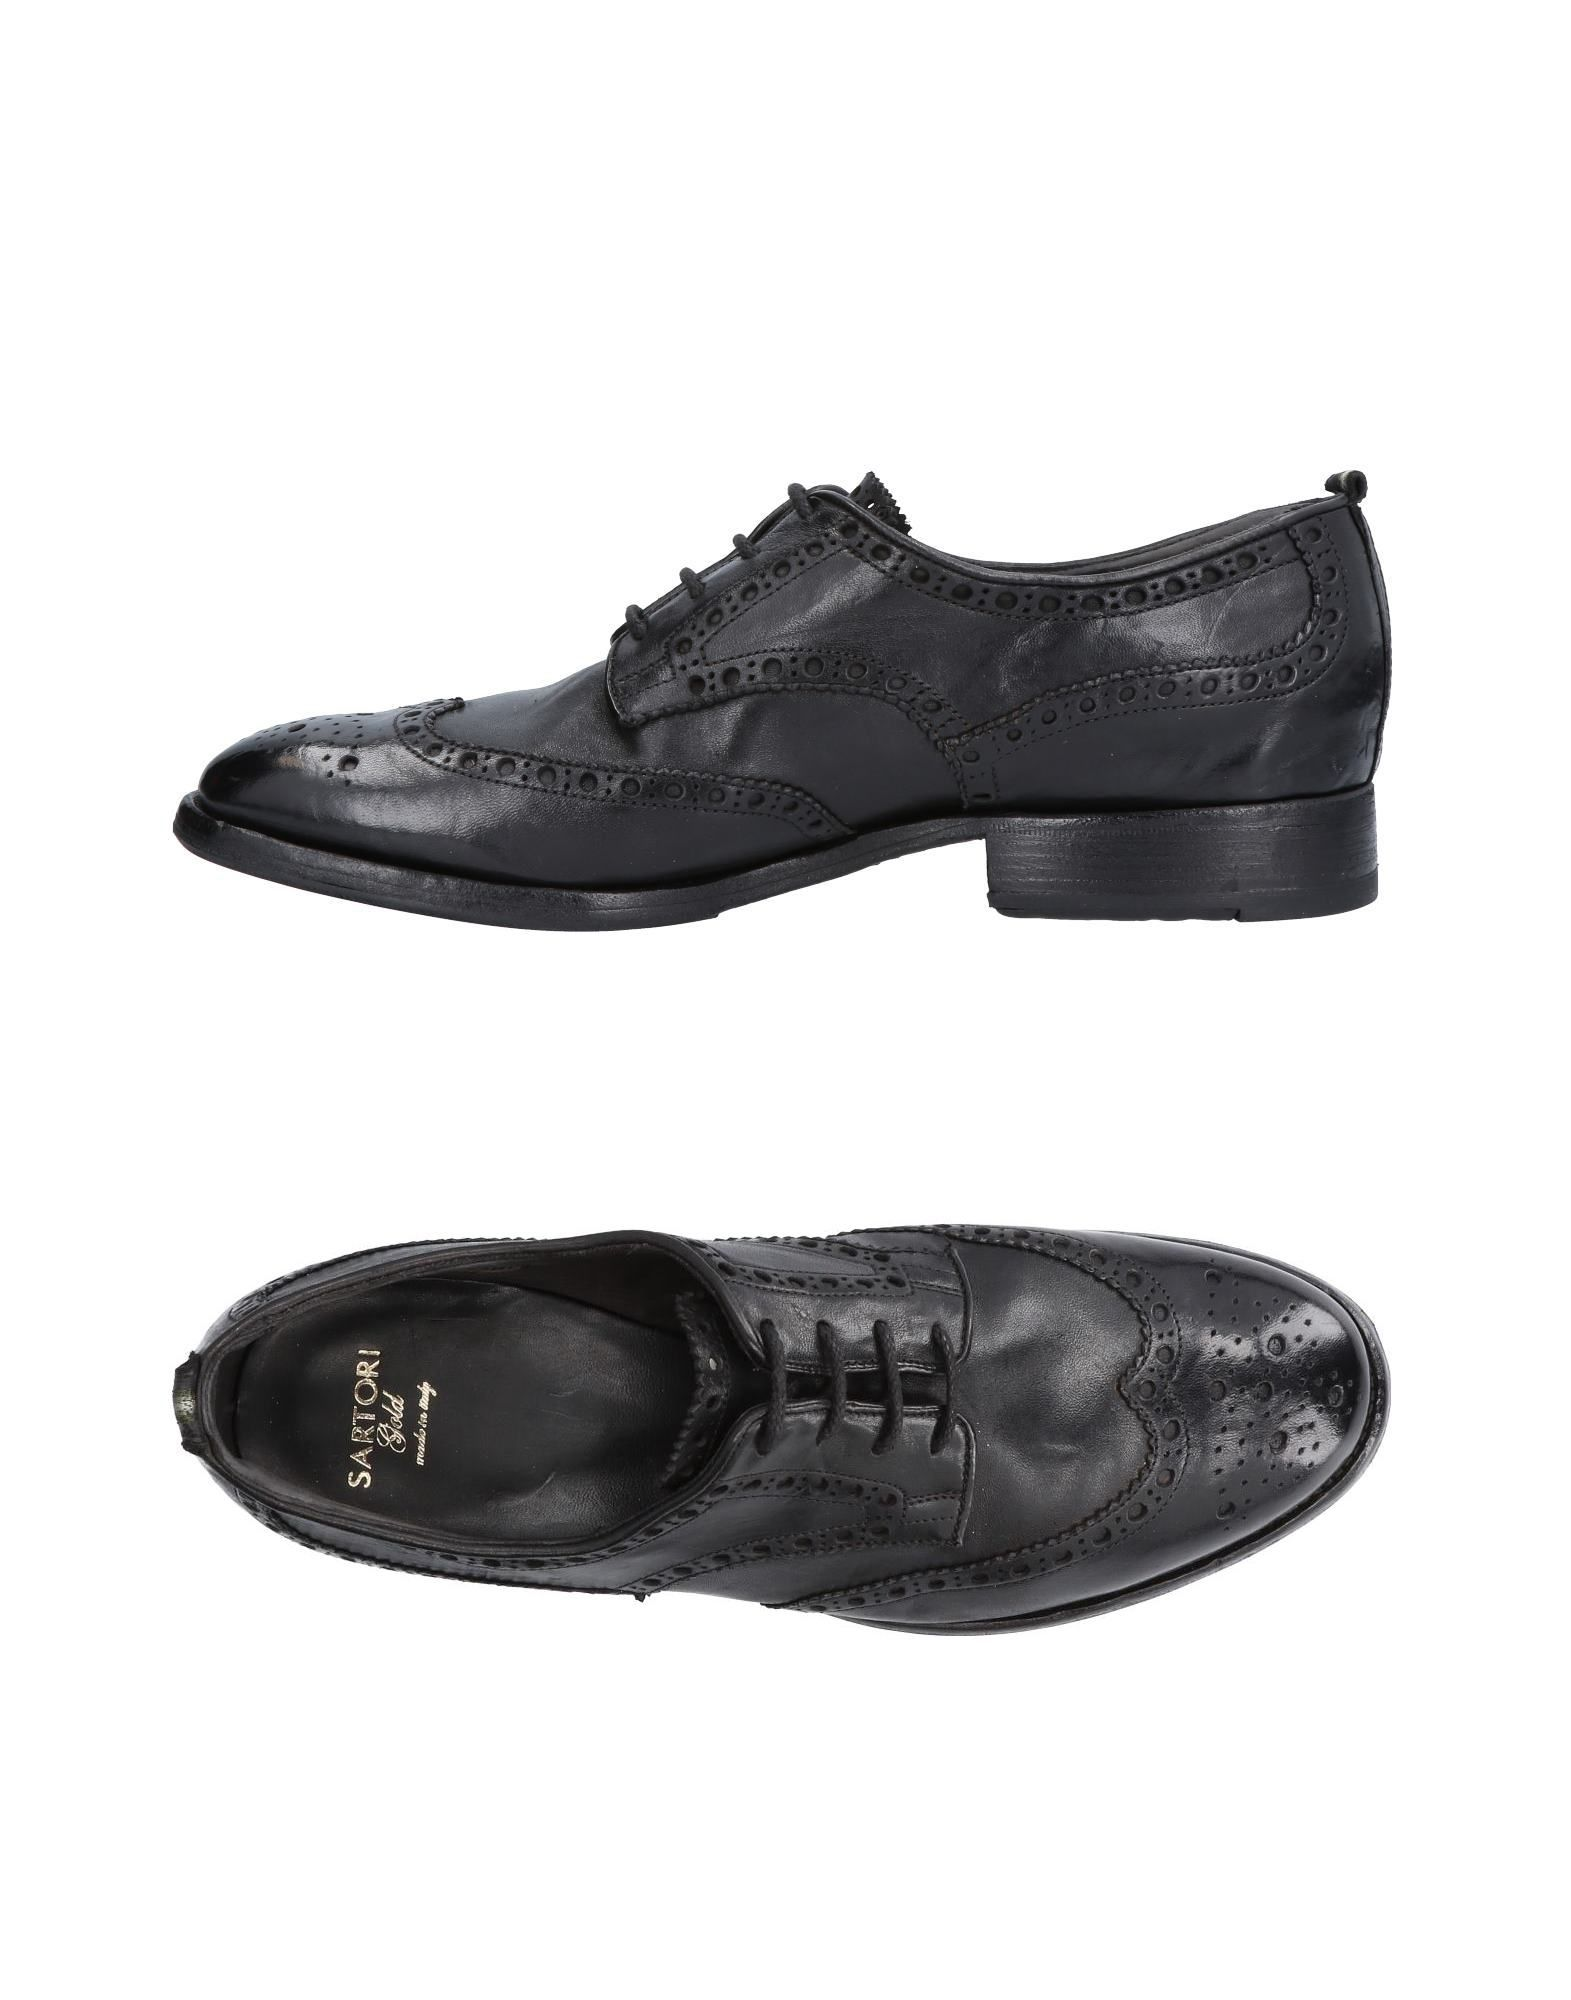 SARTORI GOLD Laced Shoes in Black